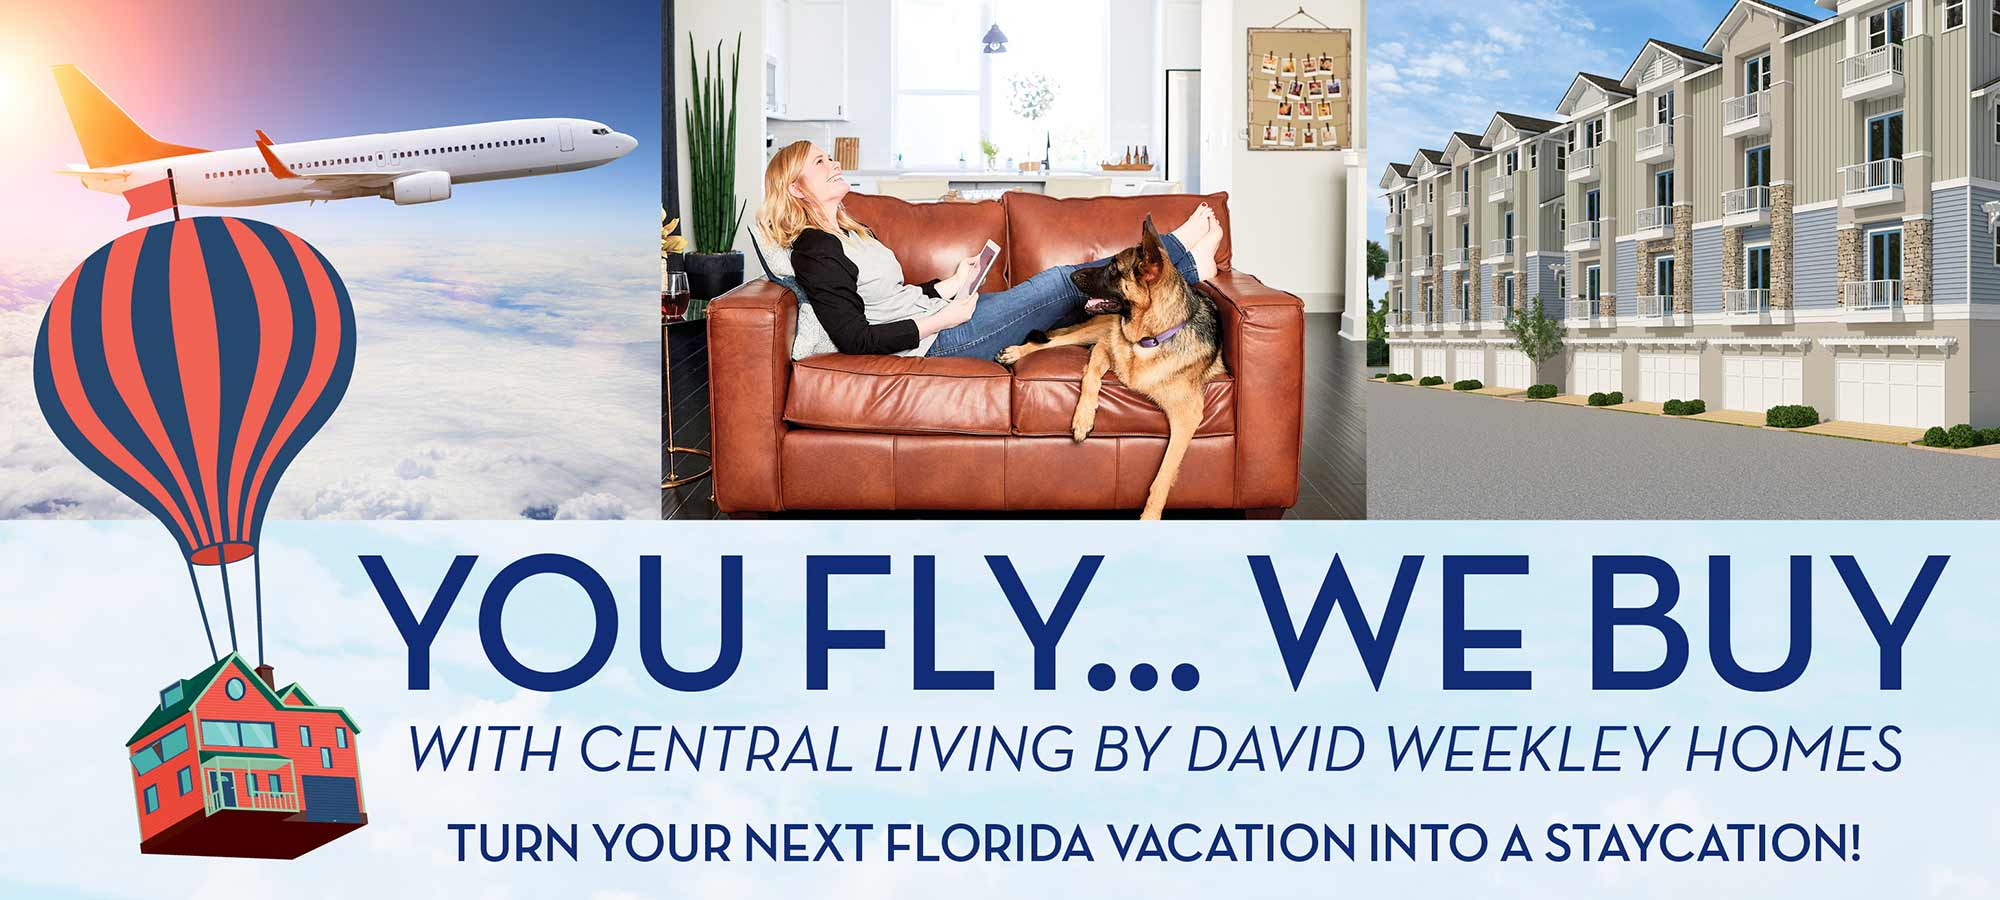 The Vacation Never Ends with David Weekley Homes